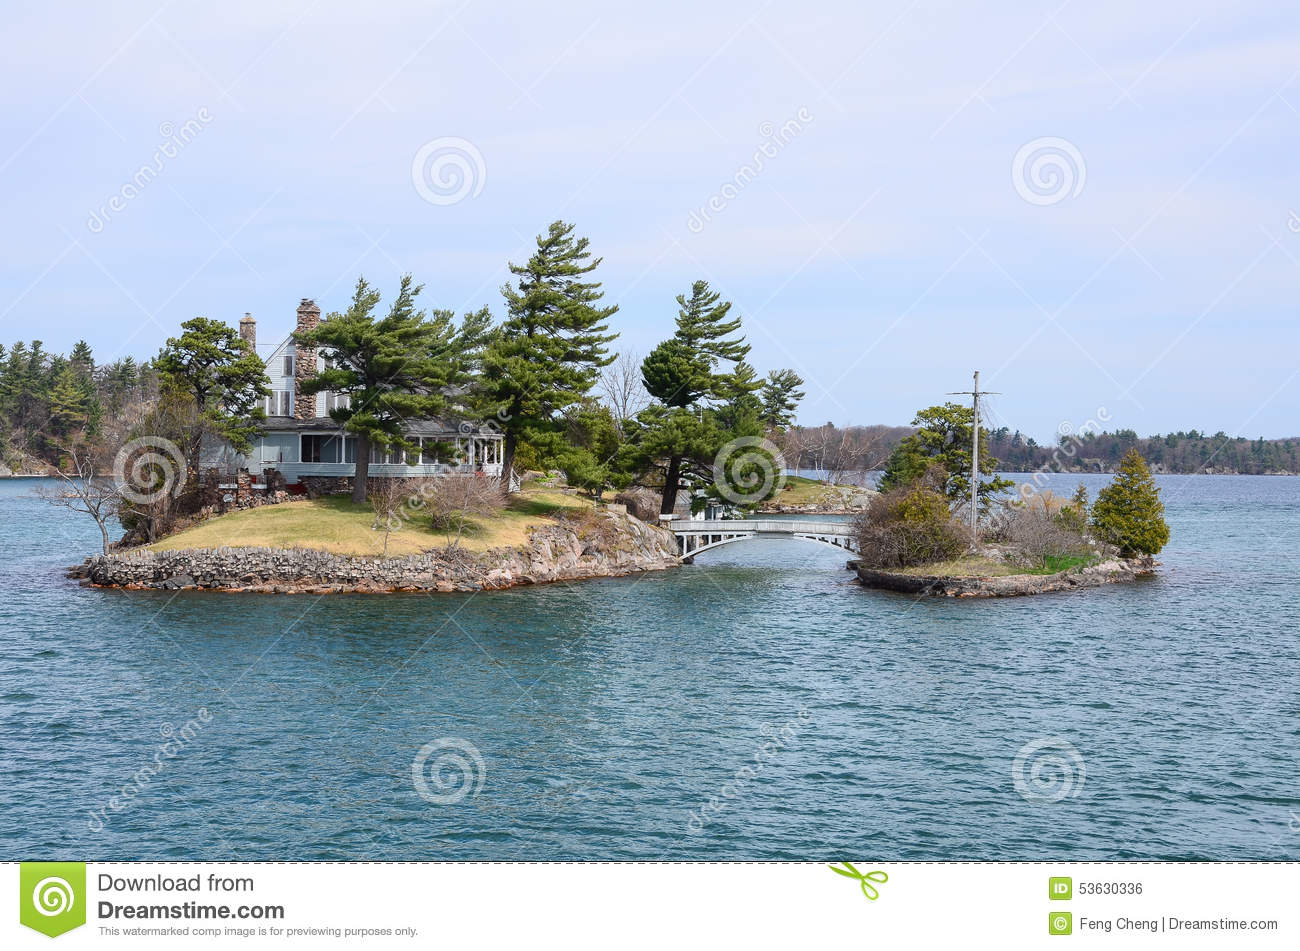 One Small Island And Small Bridge On St Lawrence River Stock Photo.